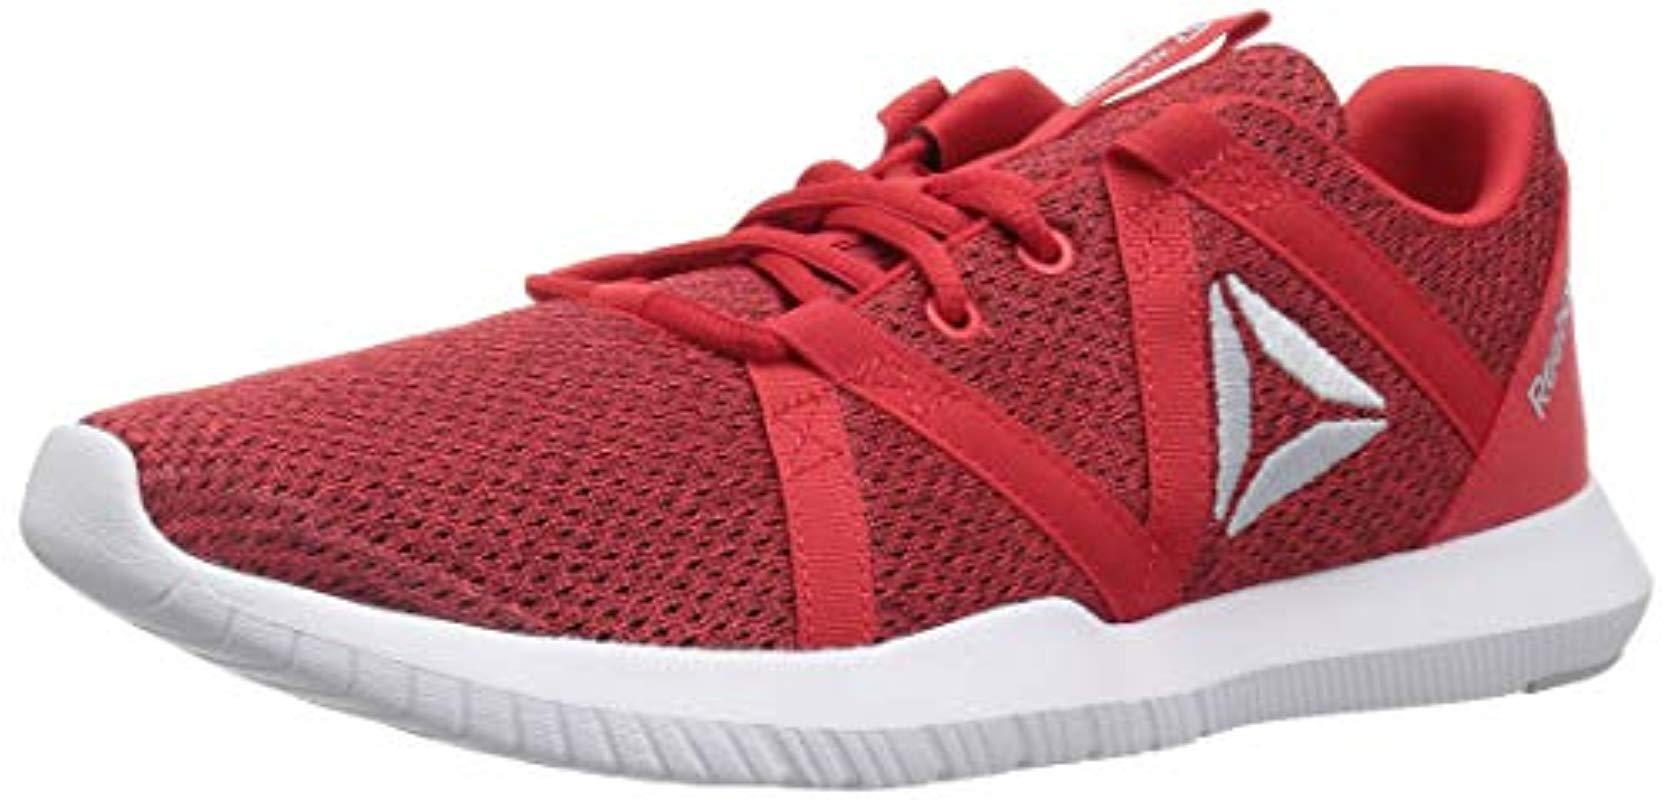 b636fe55efeb Lyst - Reebok Reago Essential Cross Trainer in Red for Men - Save 21%